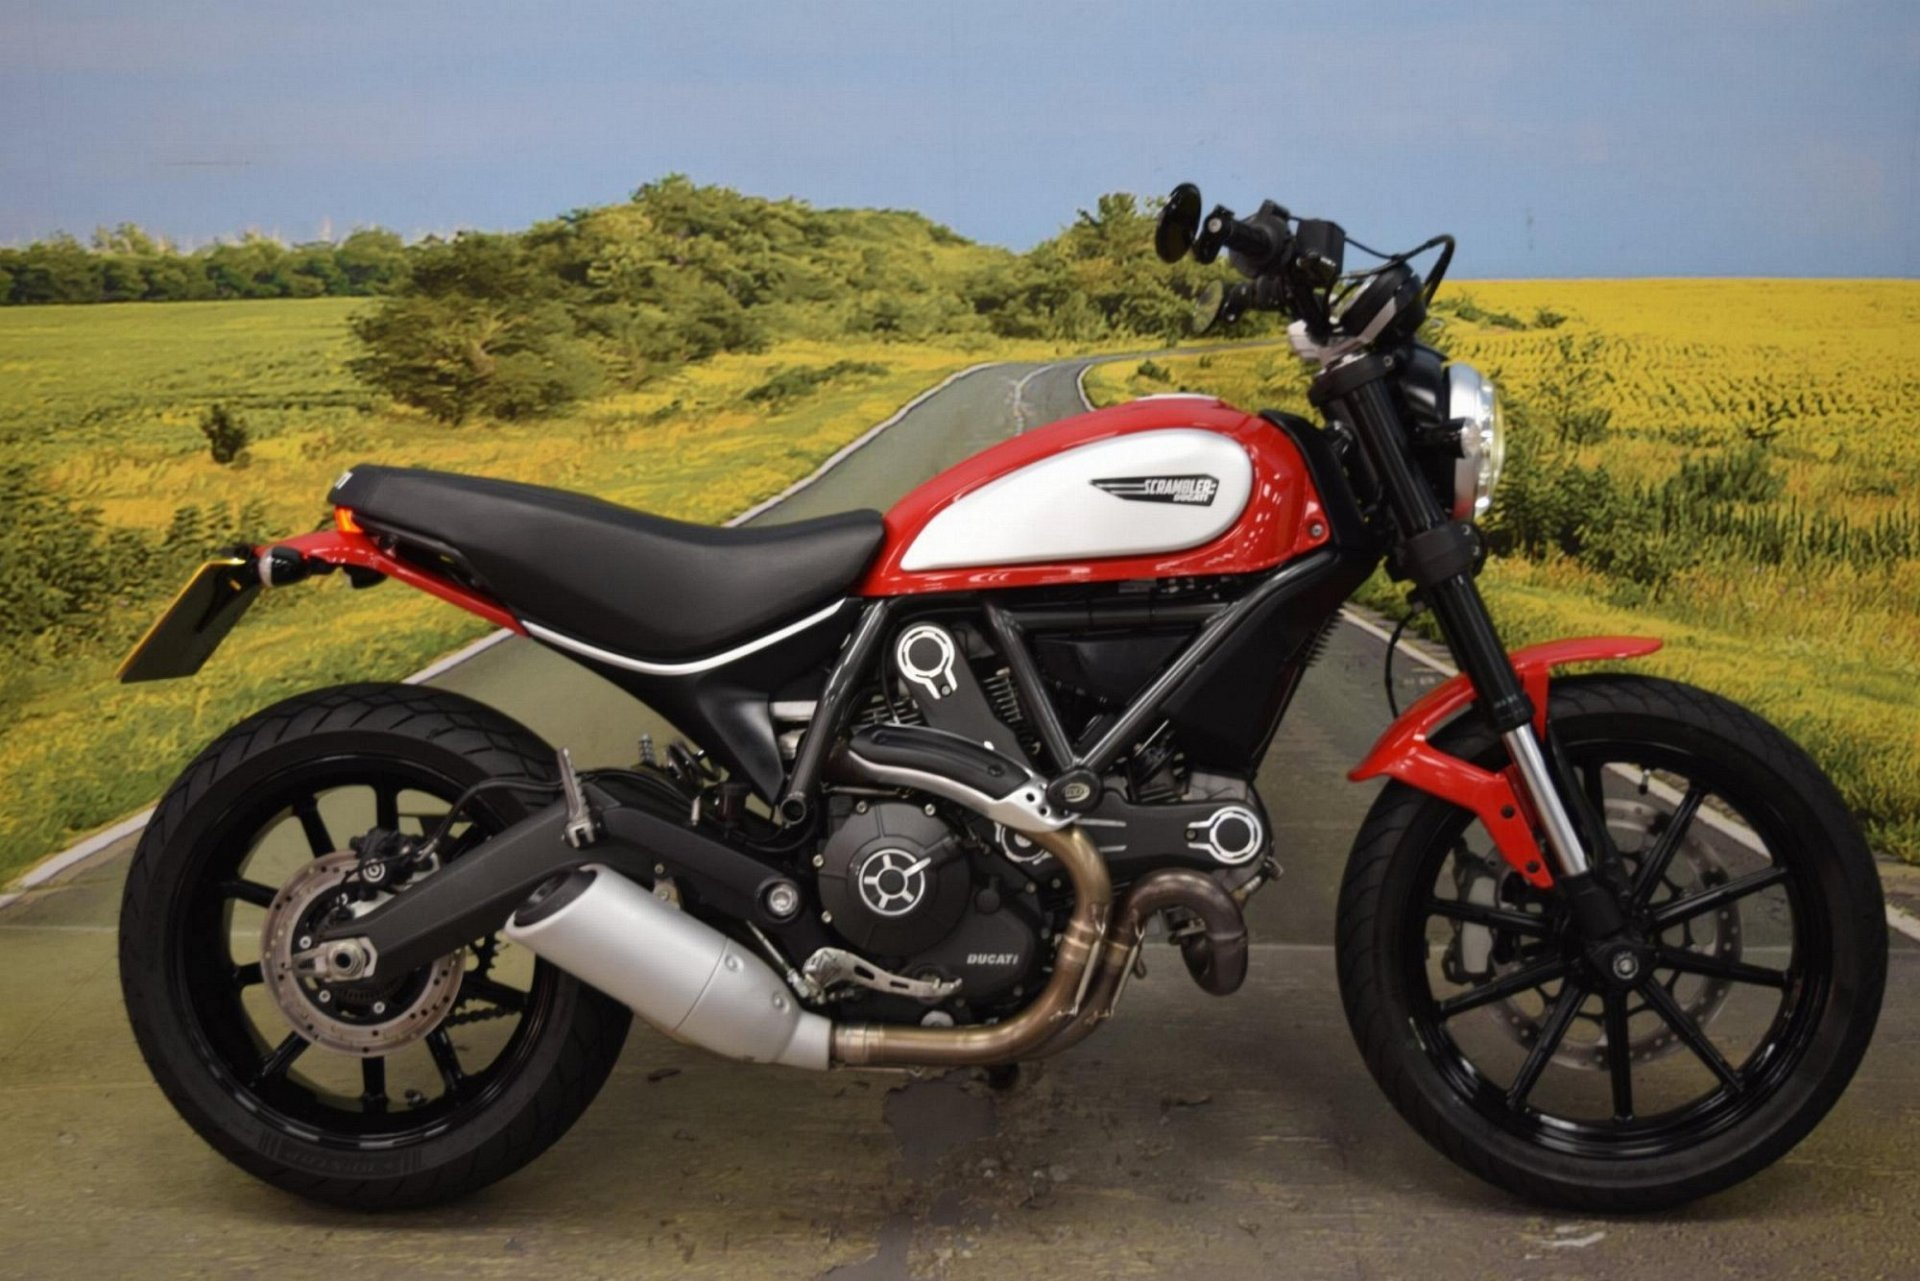 2015 Ducati Scrambler Icon for sale in Staffordshire